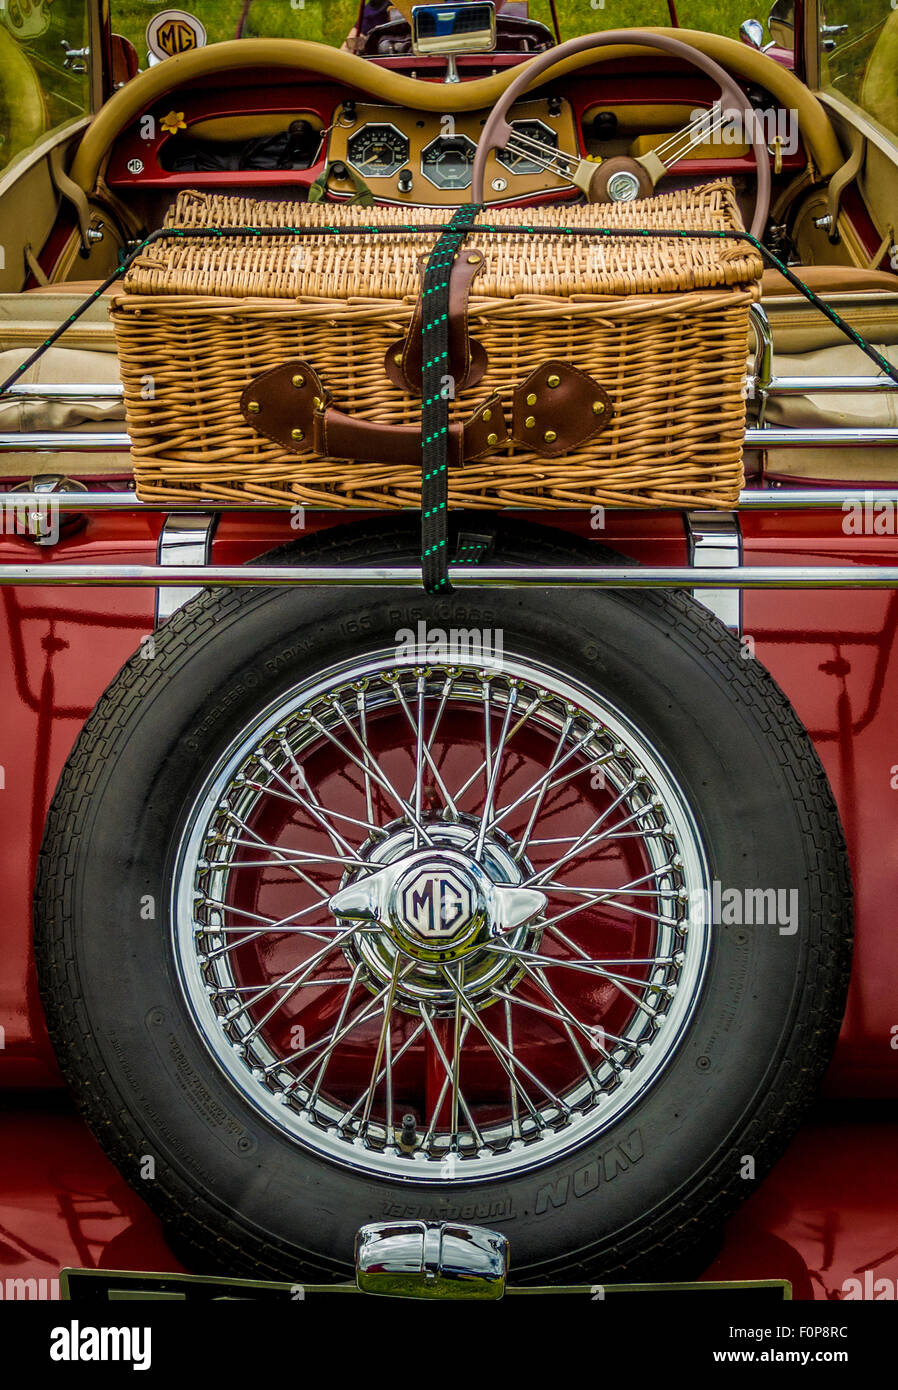 Back of open top MG sports car with wicker picnic basket - Stock Image